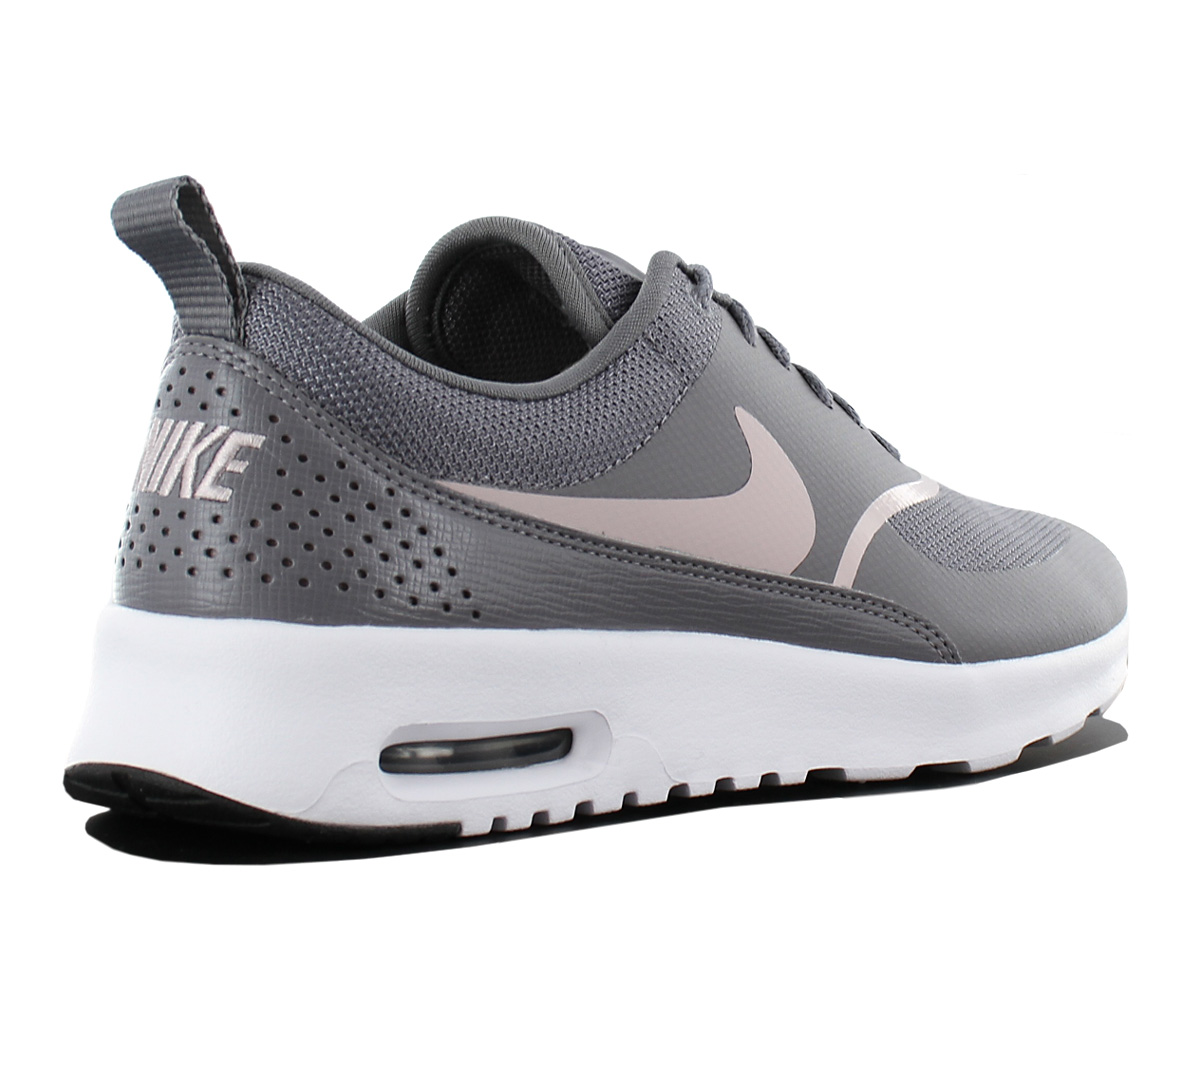 NEW Nike Air Max Thea 599409 029 Trainers Mujer Zapatos Trainers 029 zapatillas SALE 452dad